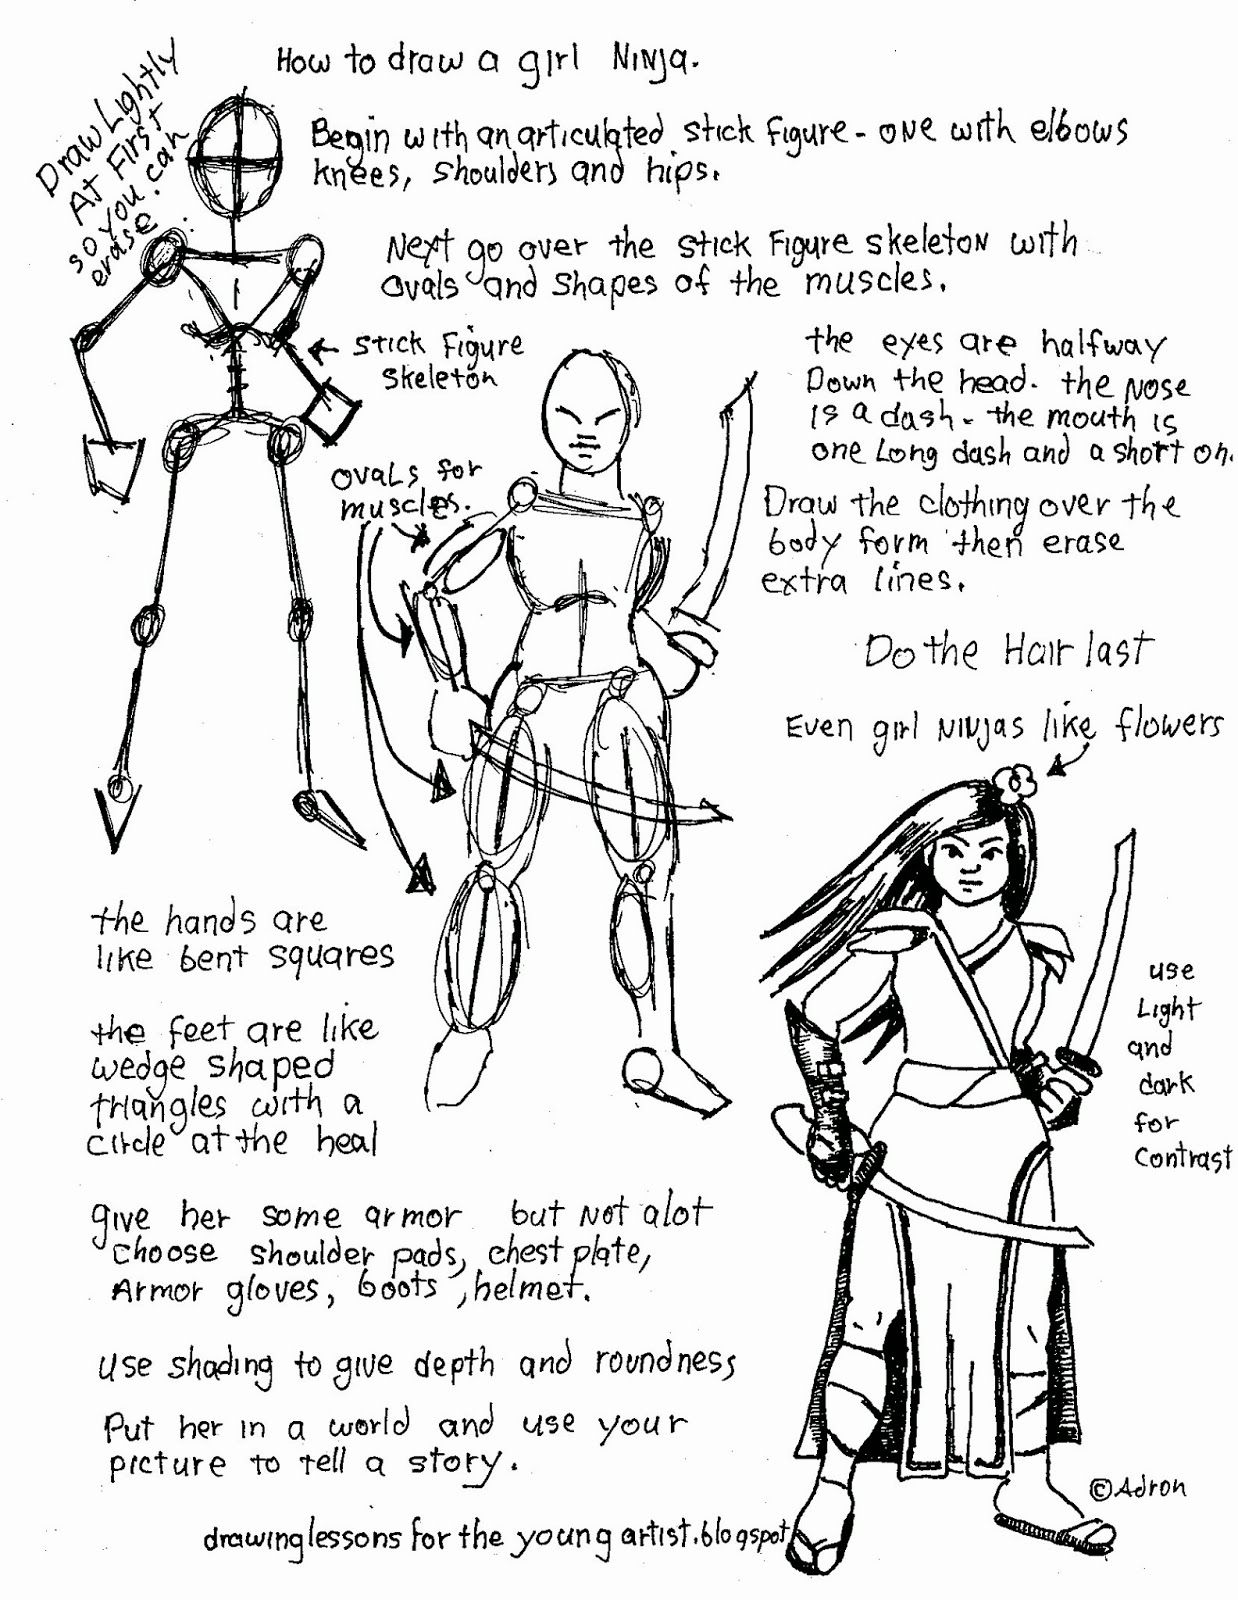 How To Draw Worksheets For The Young Artist How To Draw A Girl Ninja Free Worksheet